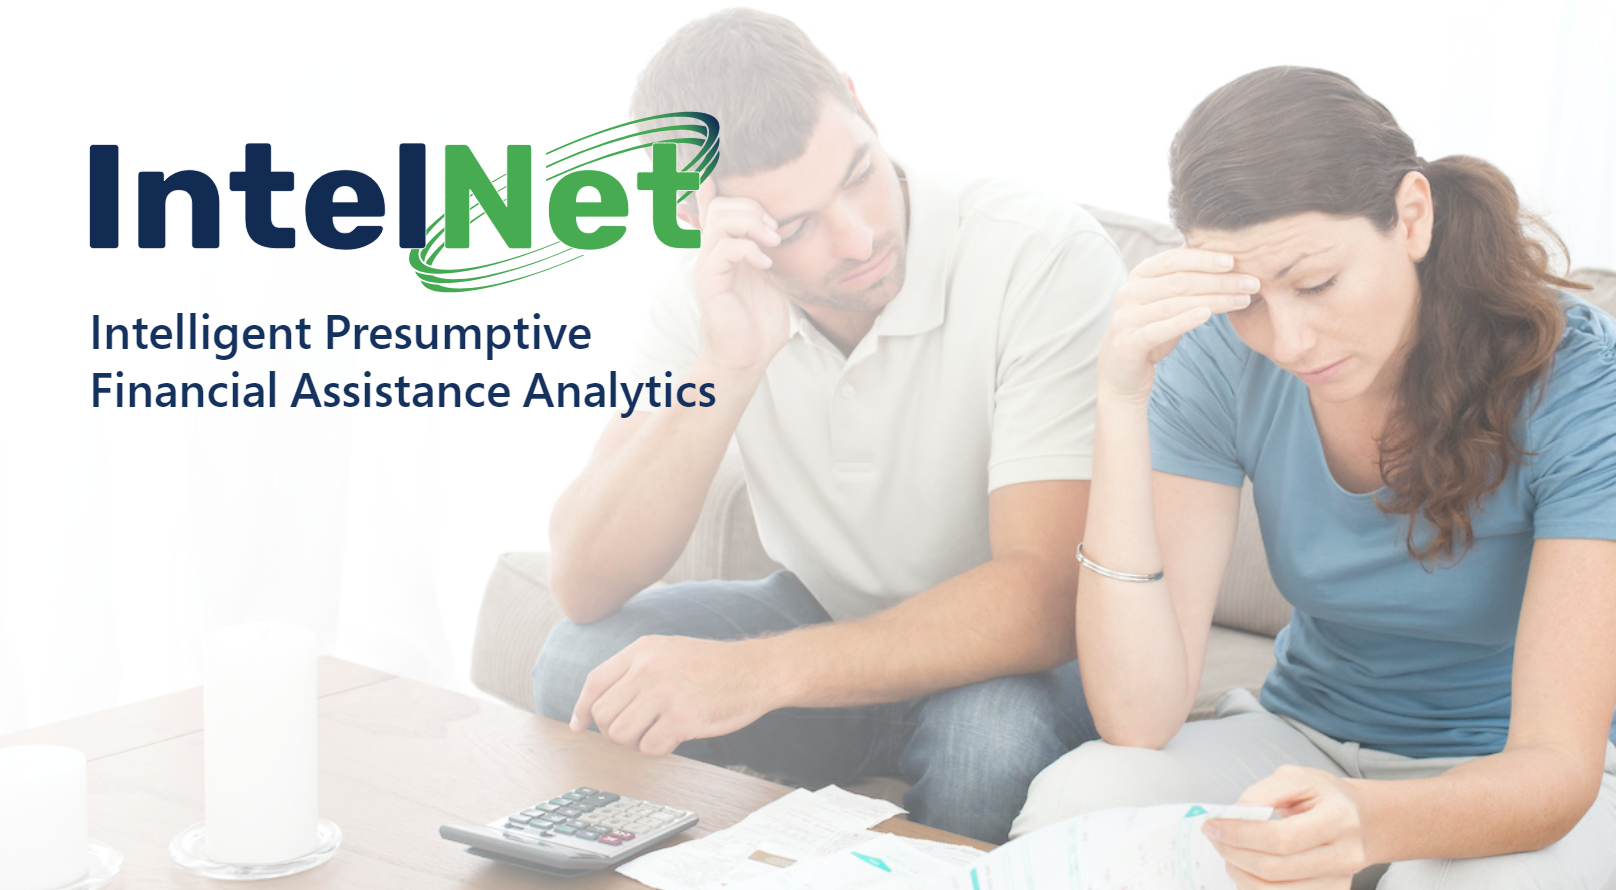 IntelNet Intelligent Presumptive Financial Assistance Analytics